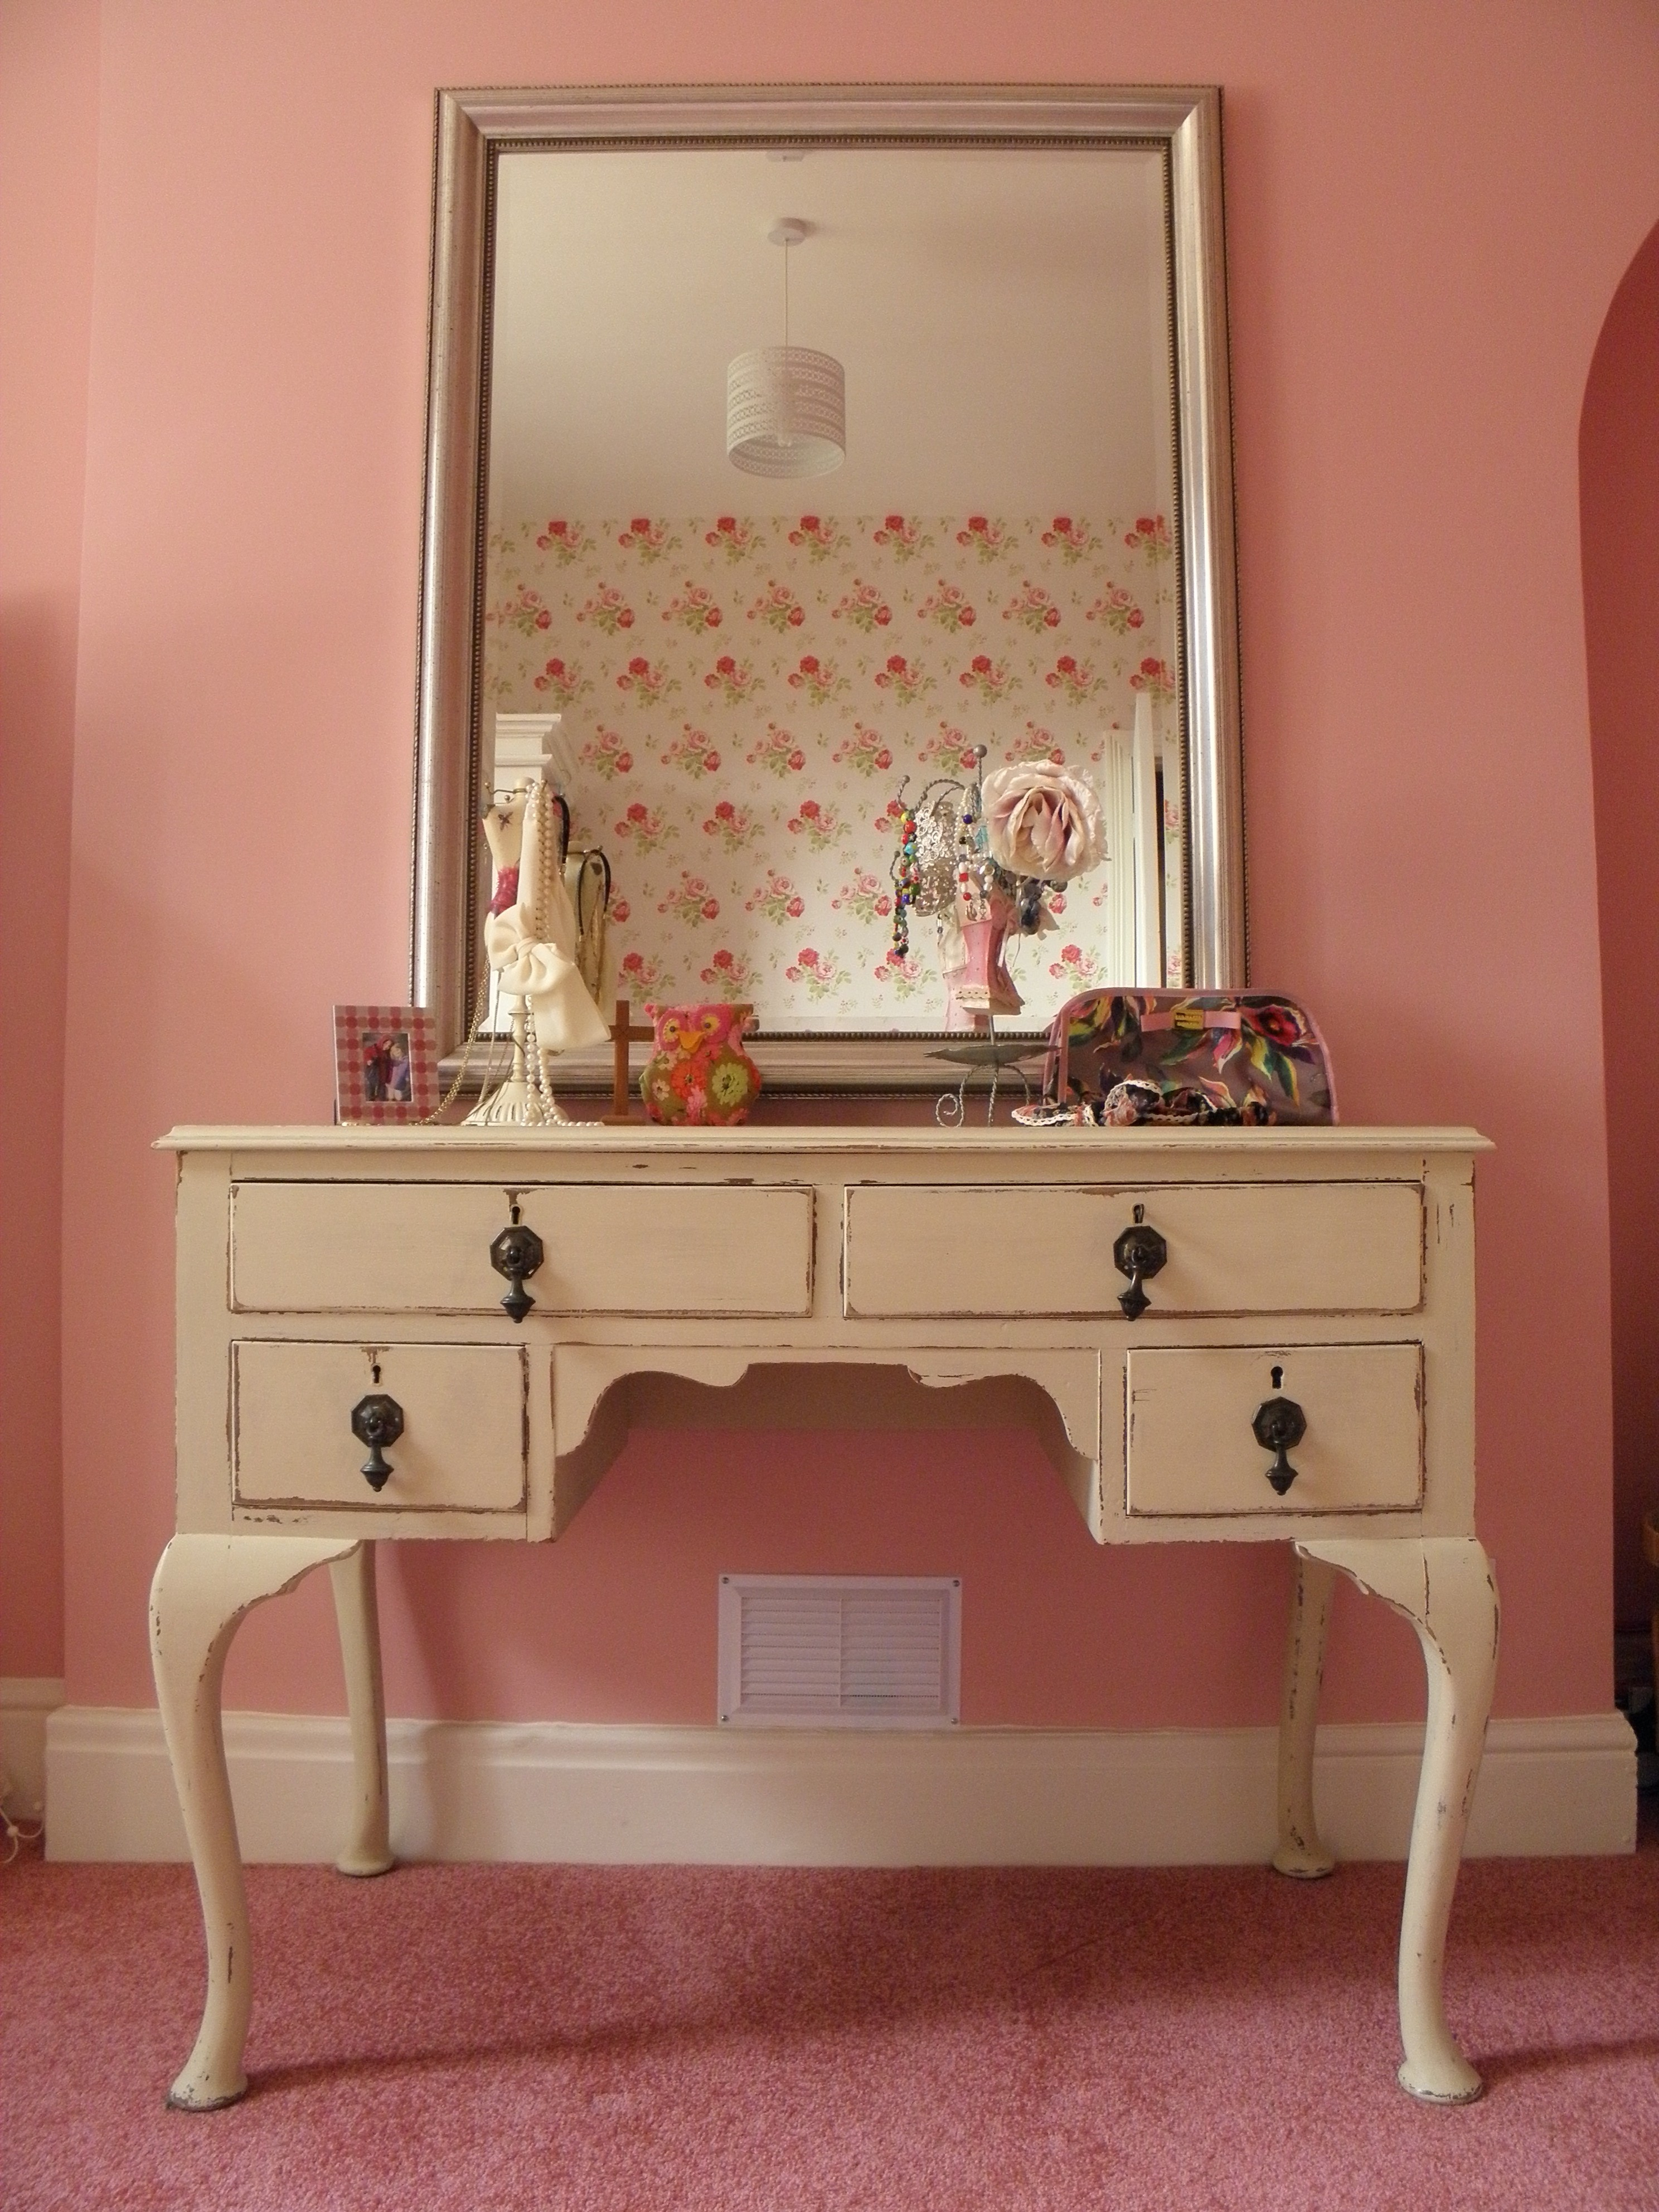 furniture-wood-metal-antique-bedroom-vanity-with-mirror-on-pink-area-rug-antique-bedroom-vanity-with-mirror-as-the-unique-way-for-chic